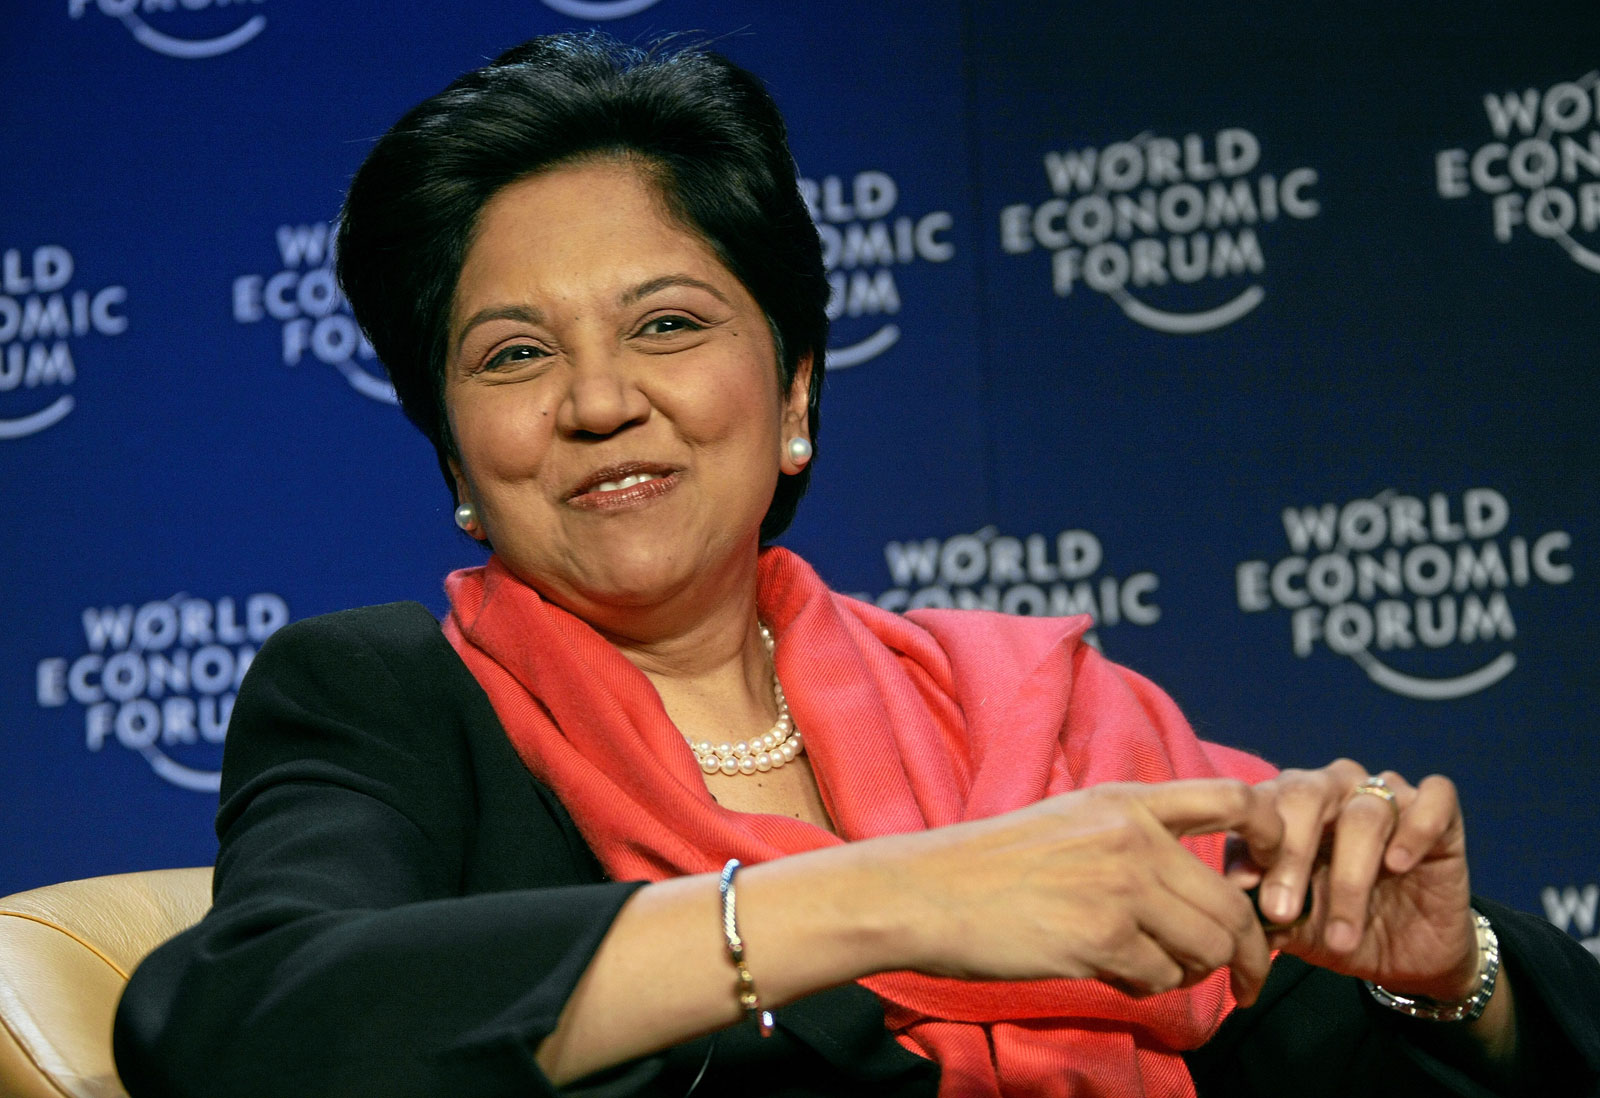 MY MENTOR INDRA NOOYI ON WORK LIFE BALANCE